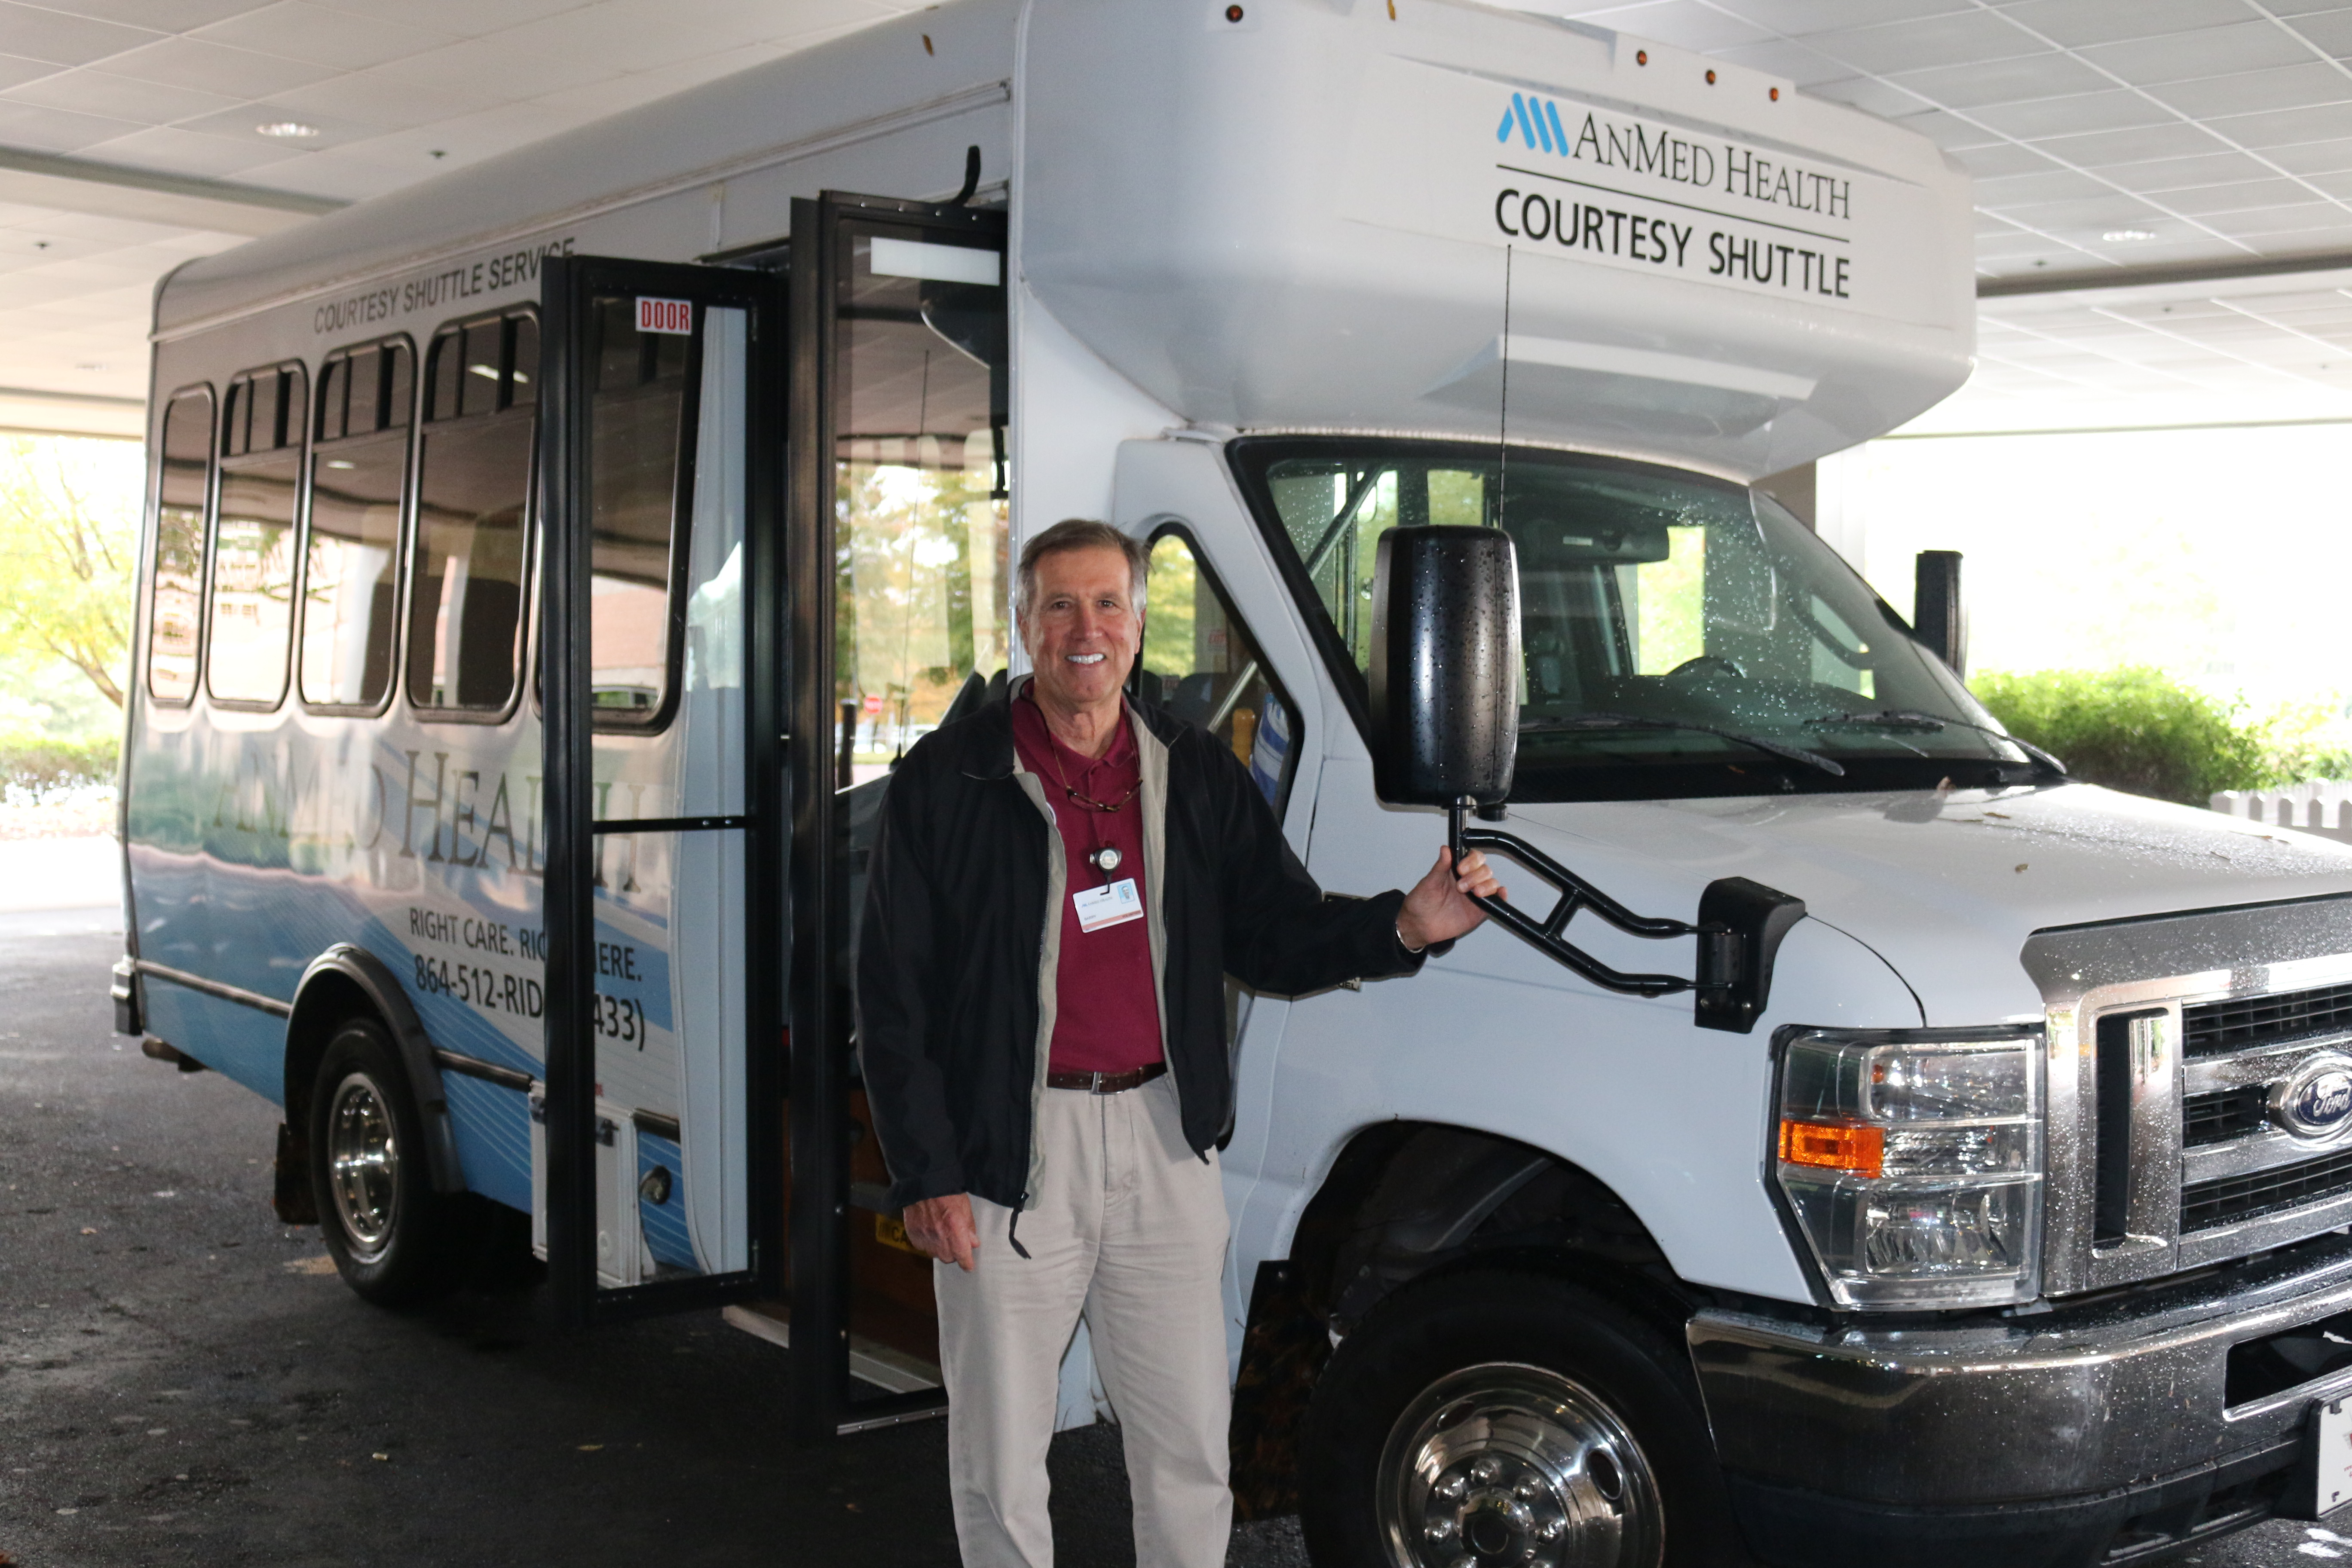 Volunteer Shuttle Drivers AnMed Health